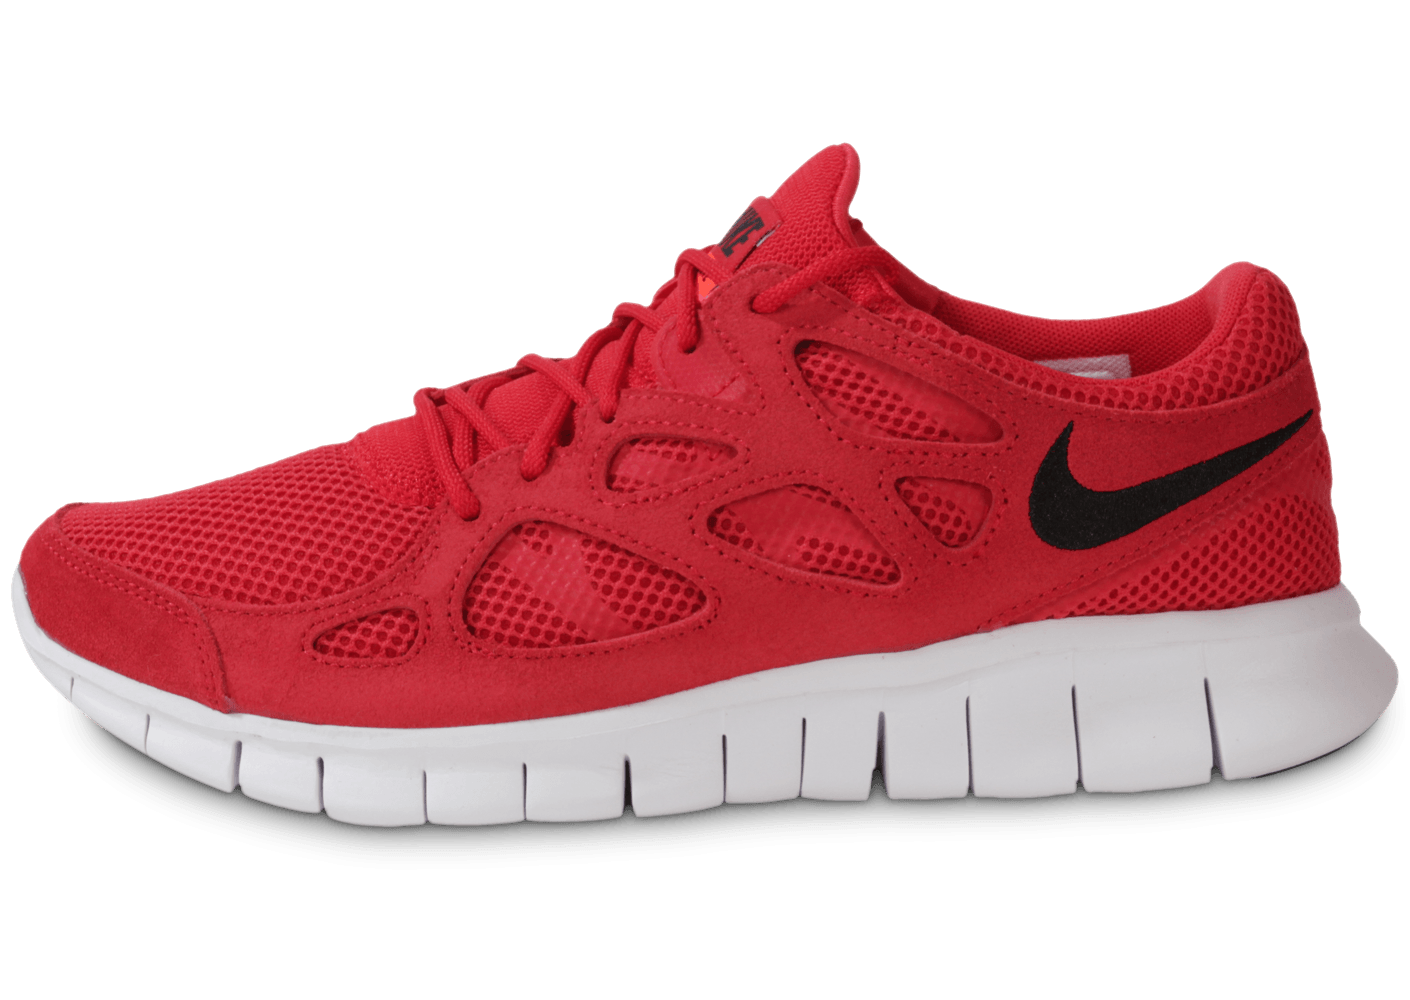 reputable site 775a1 ede08 Nike Free Run 2 Rouge - Chaussures Baskets homme - Chausport